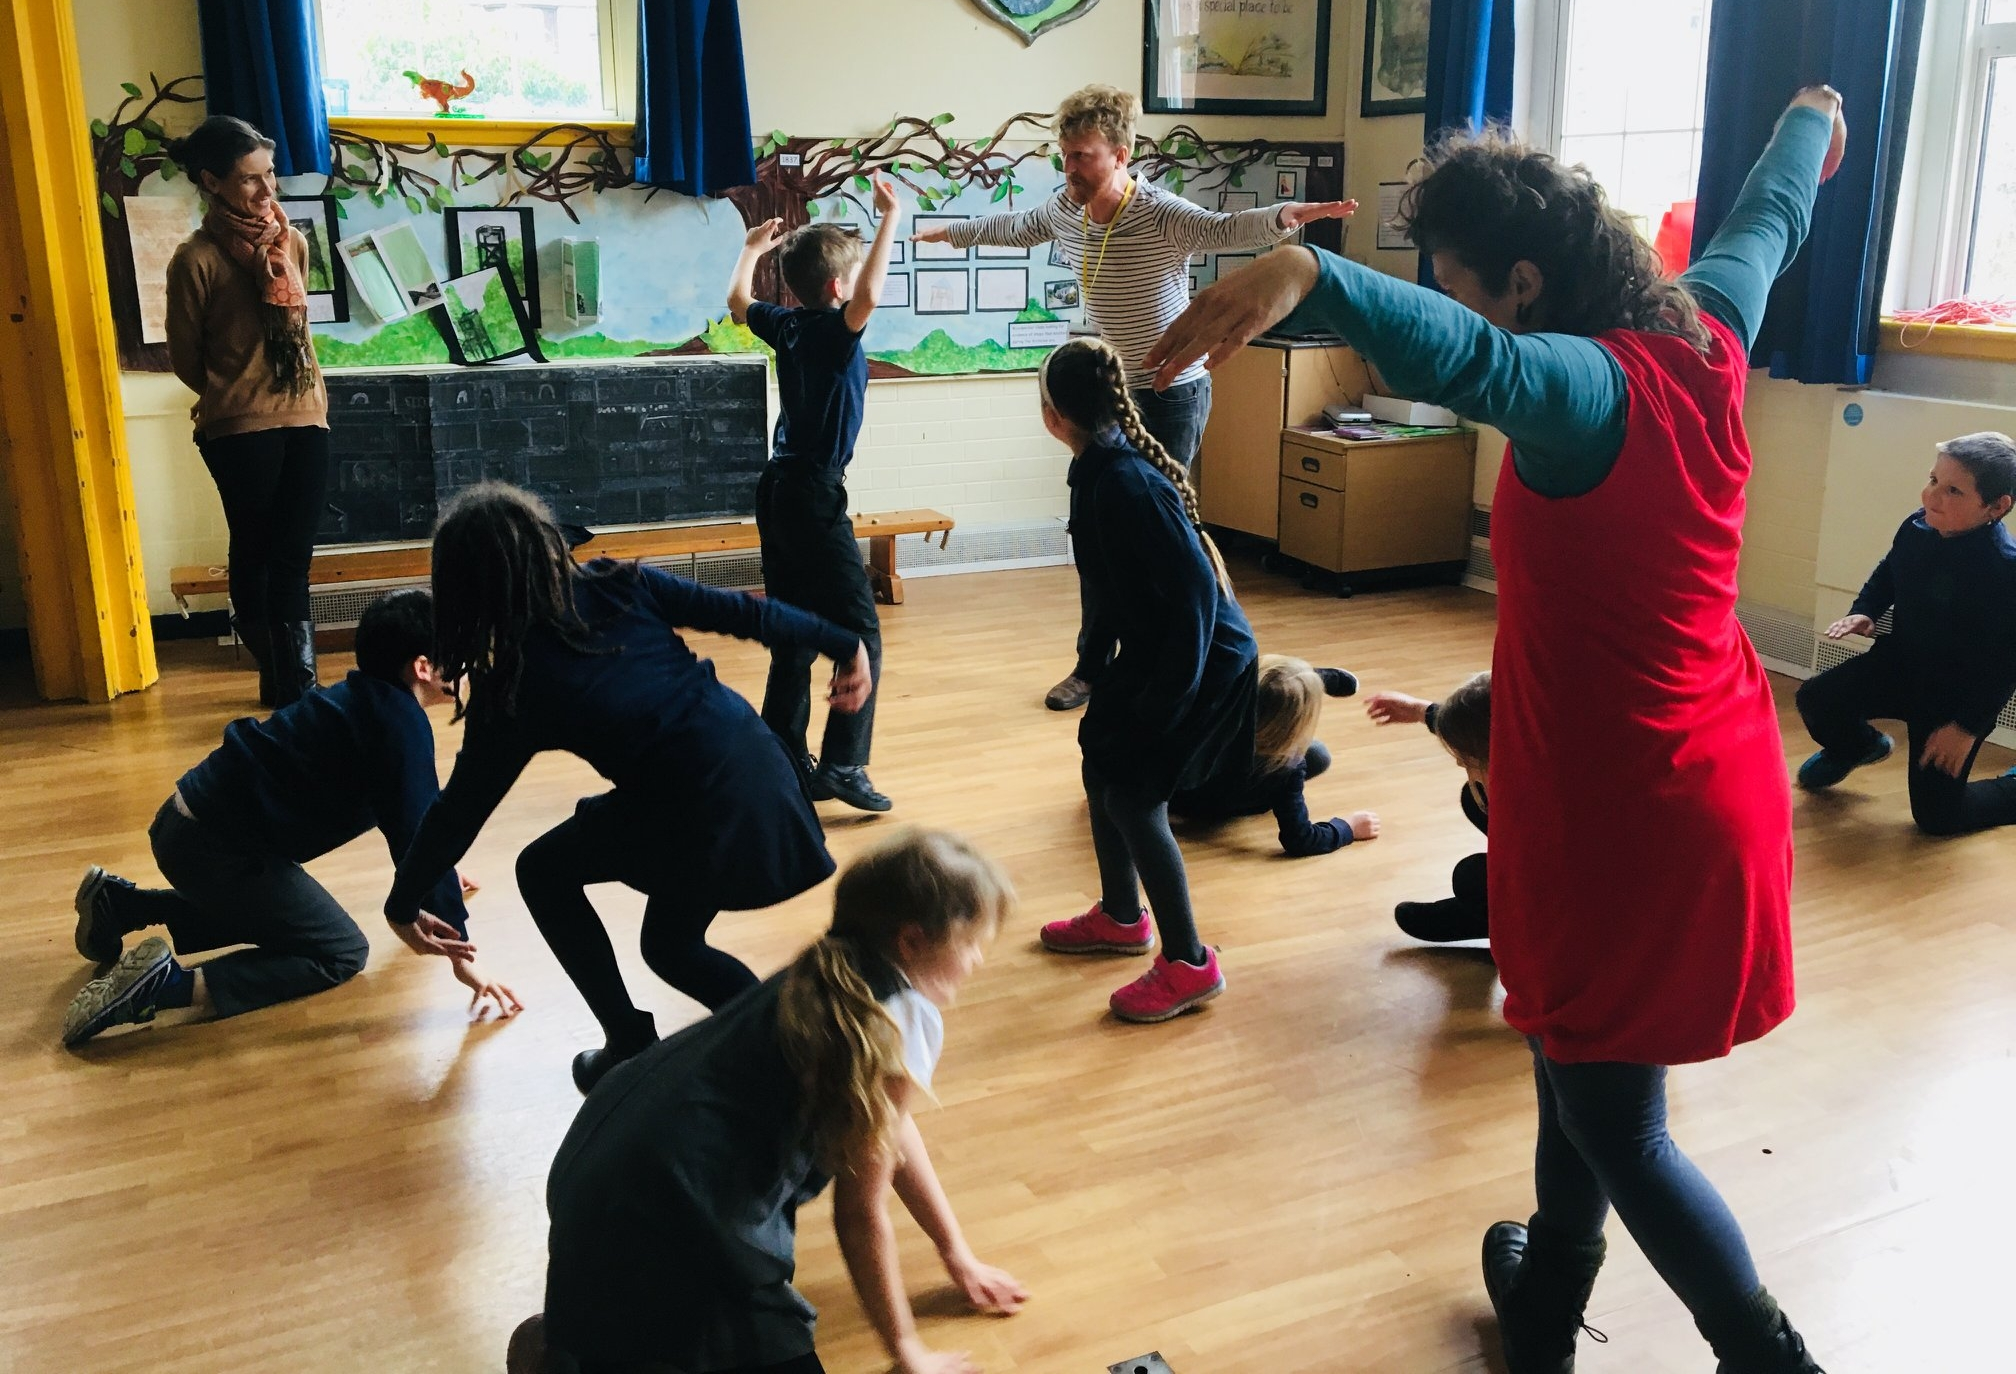 Lydbrook School - From Jan - May 2018 Wyldwood associate artists Chez Dunford and Adam Blake ran a series of community engagement workshops. With several schools from the Wye Valley they will be making a new performance with the students. See project page.